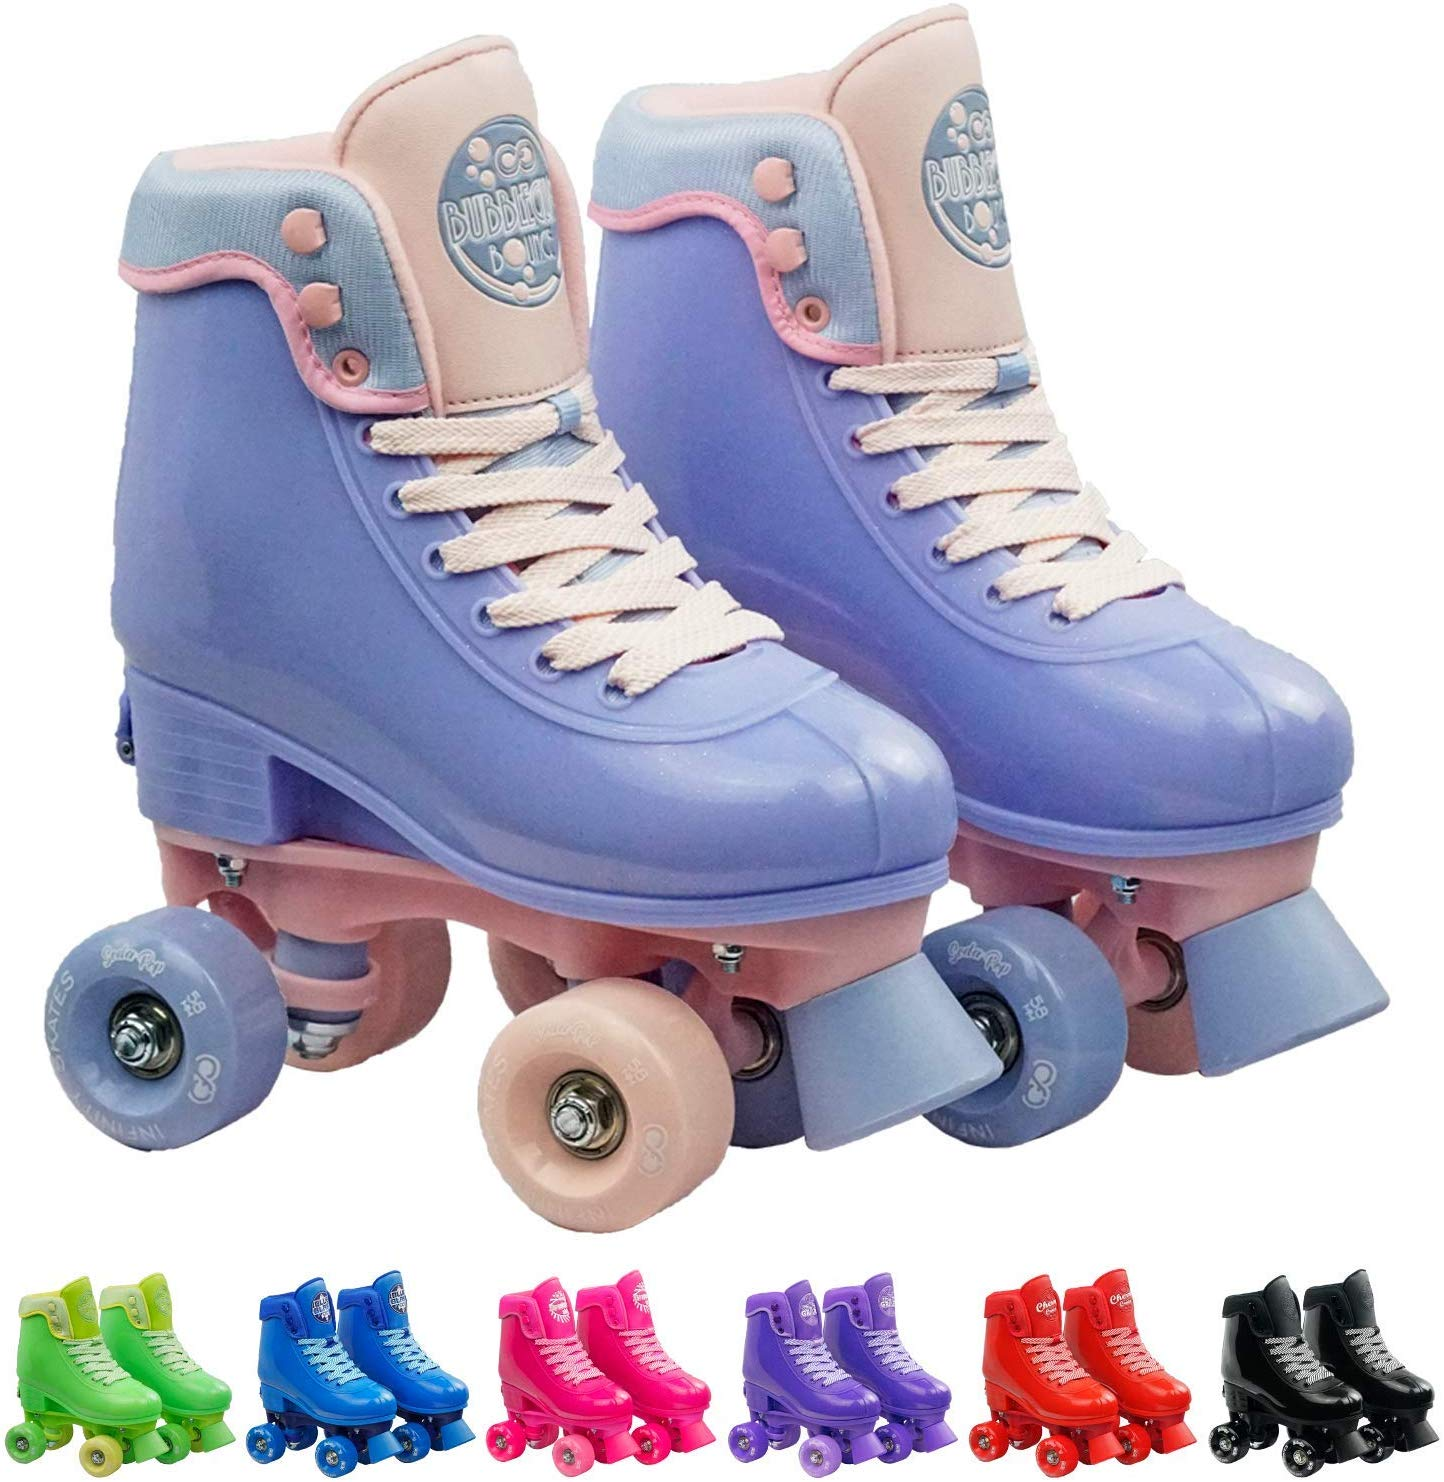 Infinity Skates Adjustable Roller Skates for Girls and Boys - Soda Pop Series - Available in 7 Colorsc